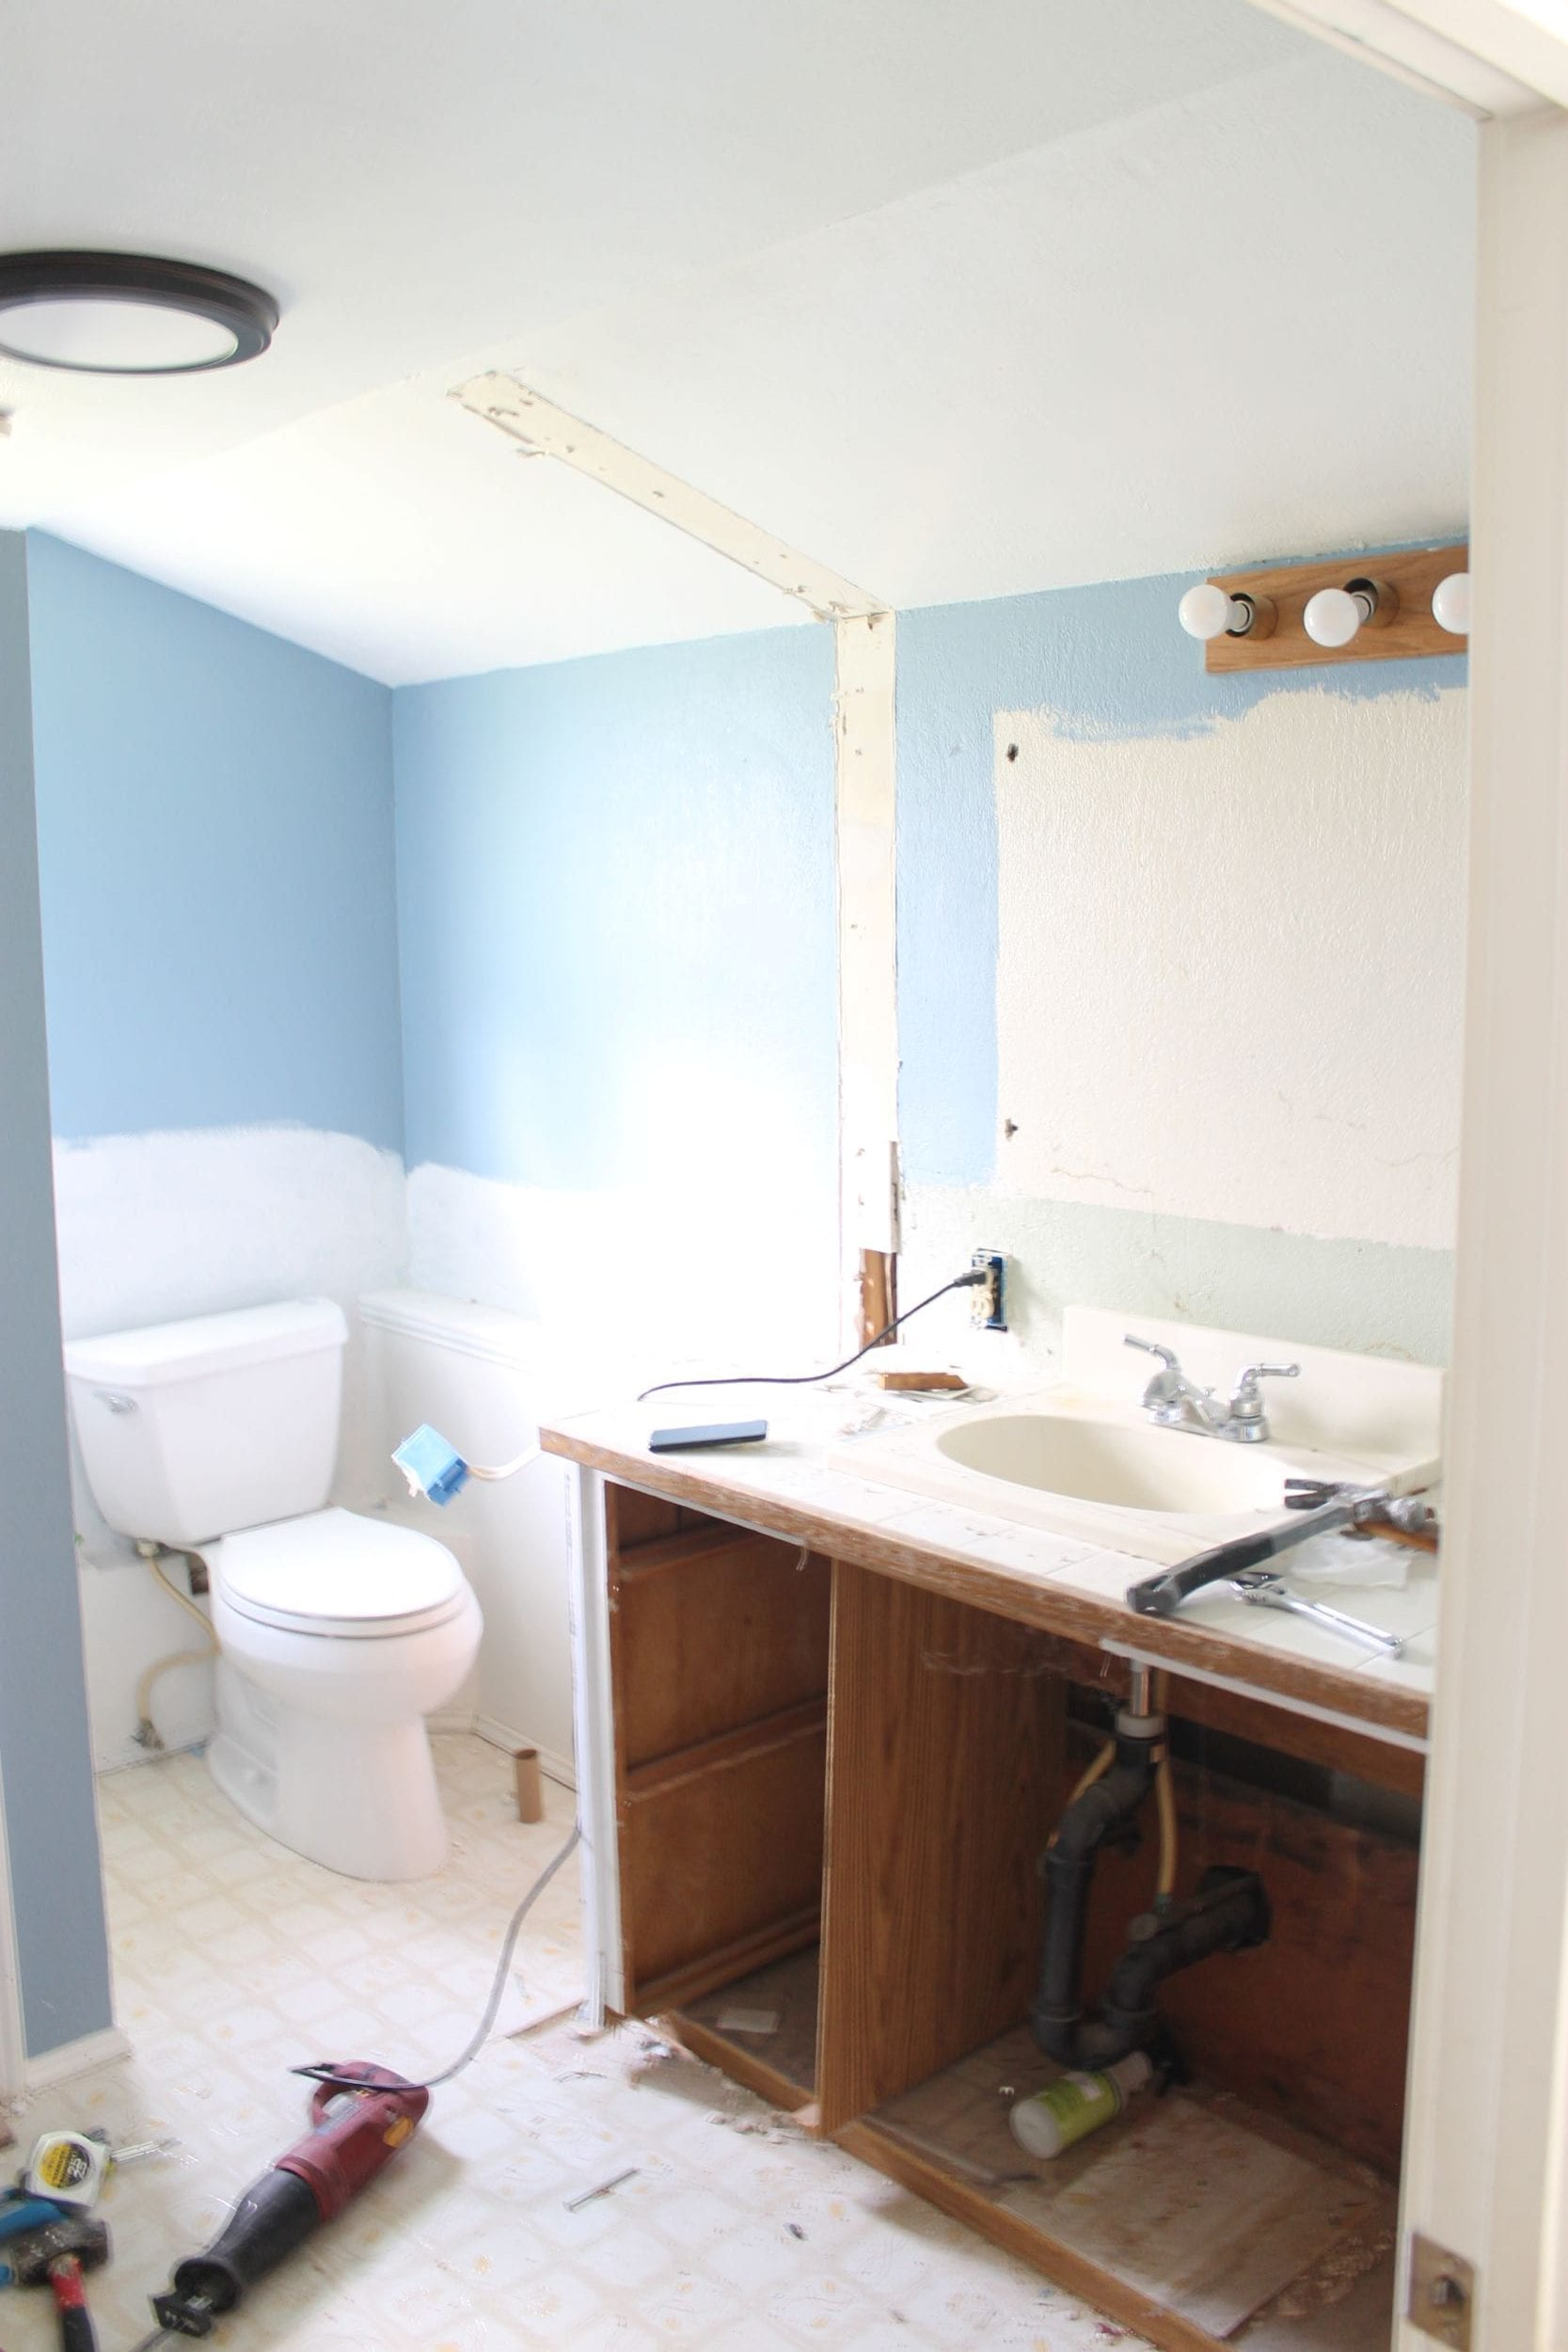 Small bathroom remodel process. Removing the mirror and vanity